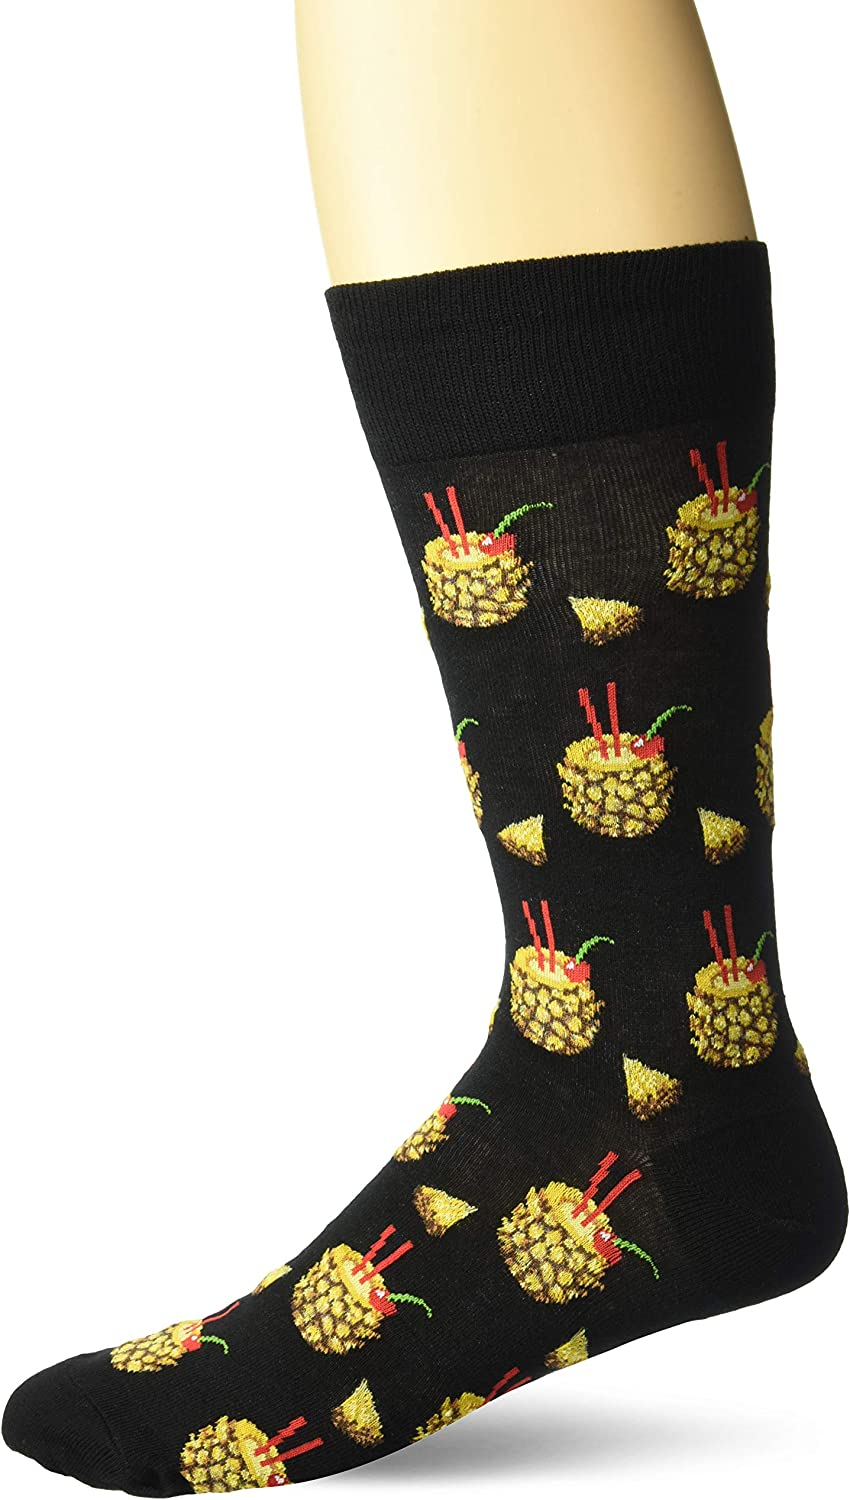 Hot Sox Men's Food and Booze Novelty Casual Crew